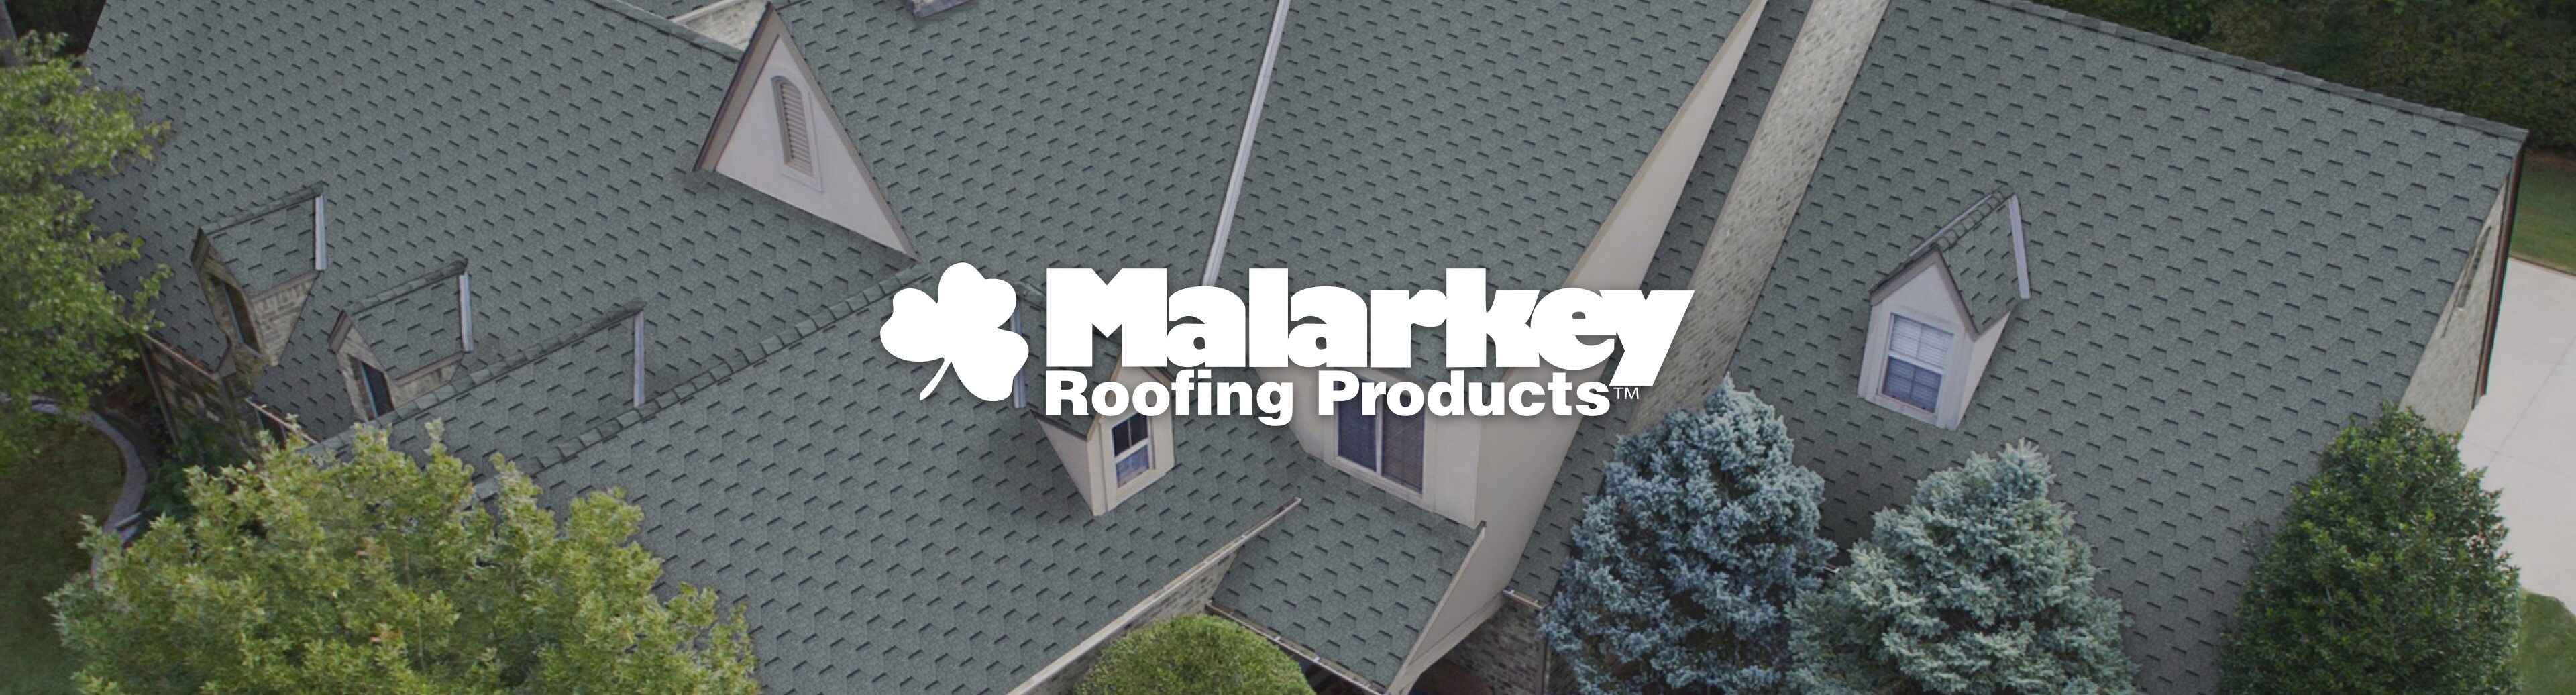 Malarkey Roofing Products logo with aerial view of a house with grey shingles